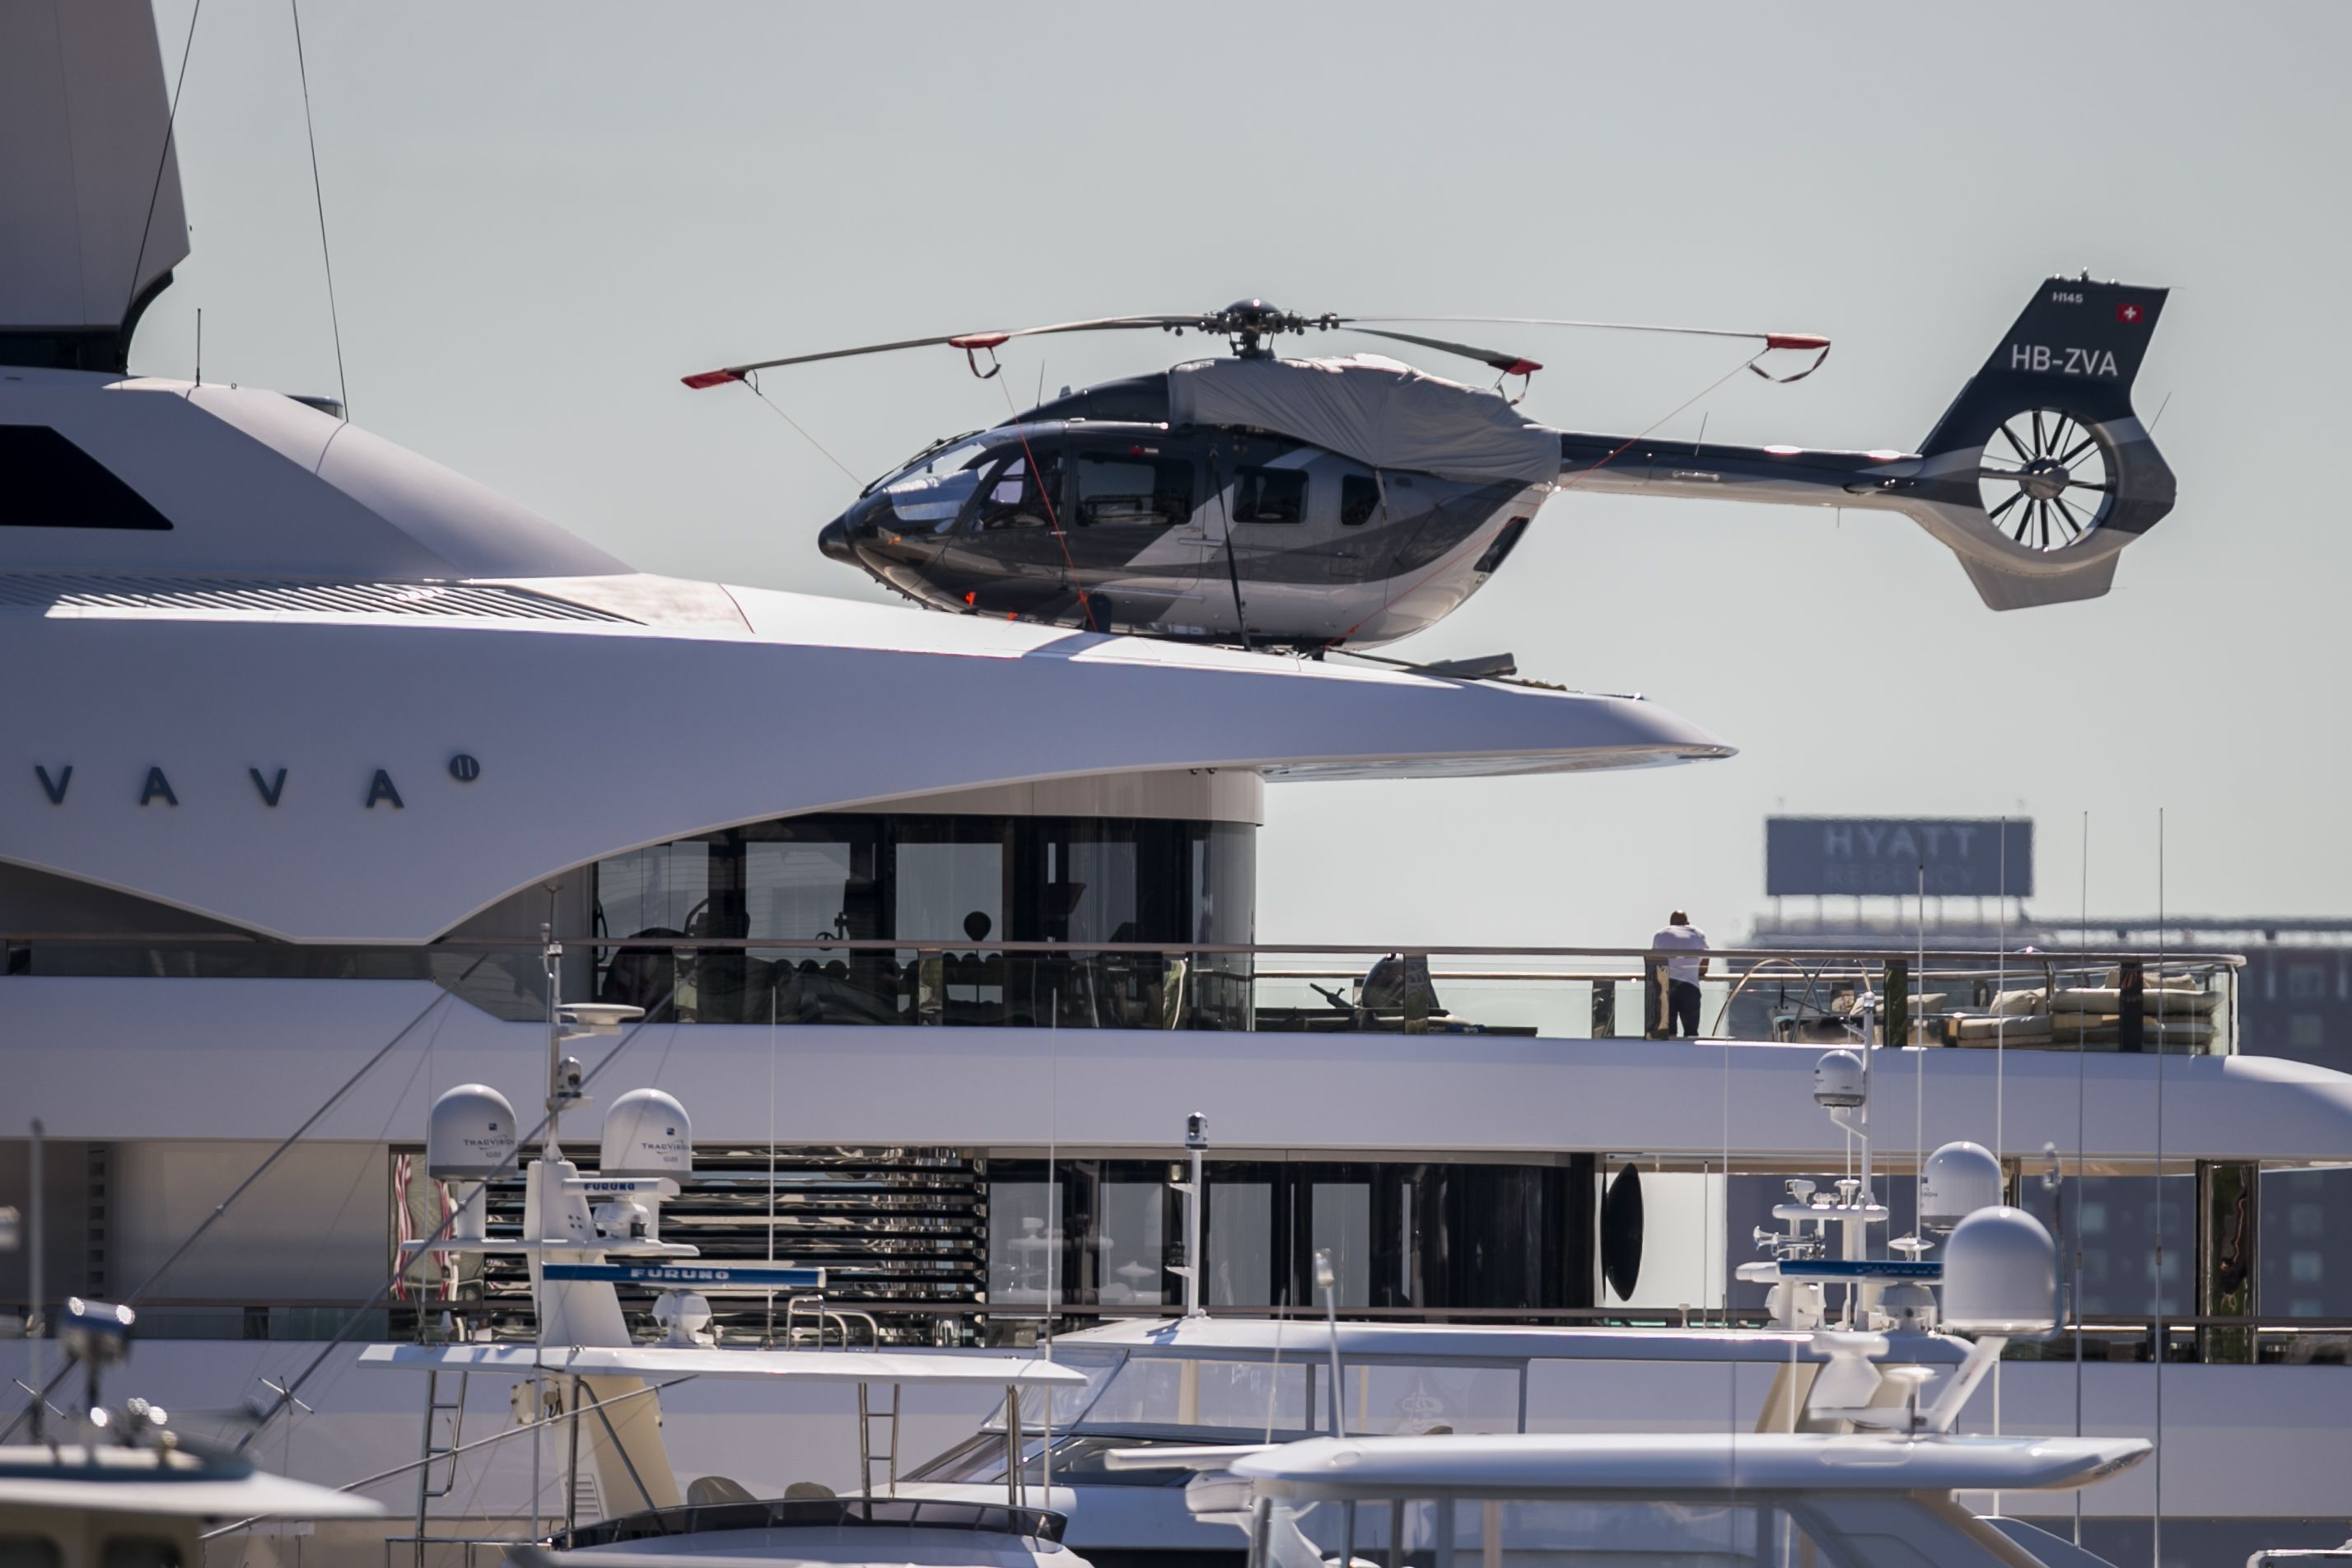 That's one big (and expensive) yacht: Vava II visits Boston - The